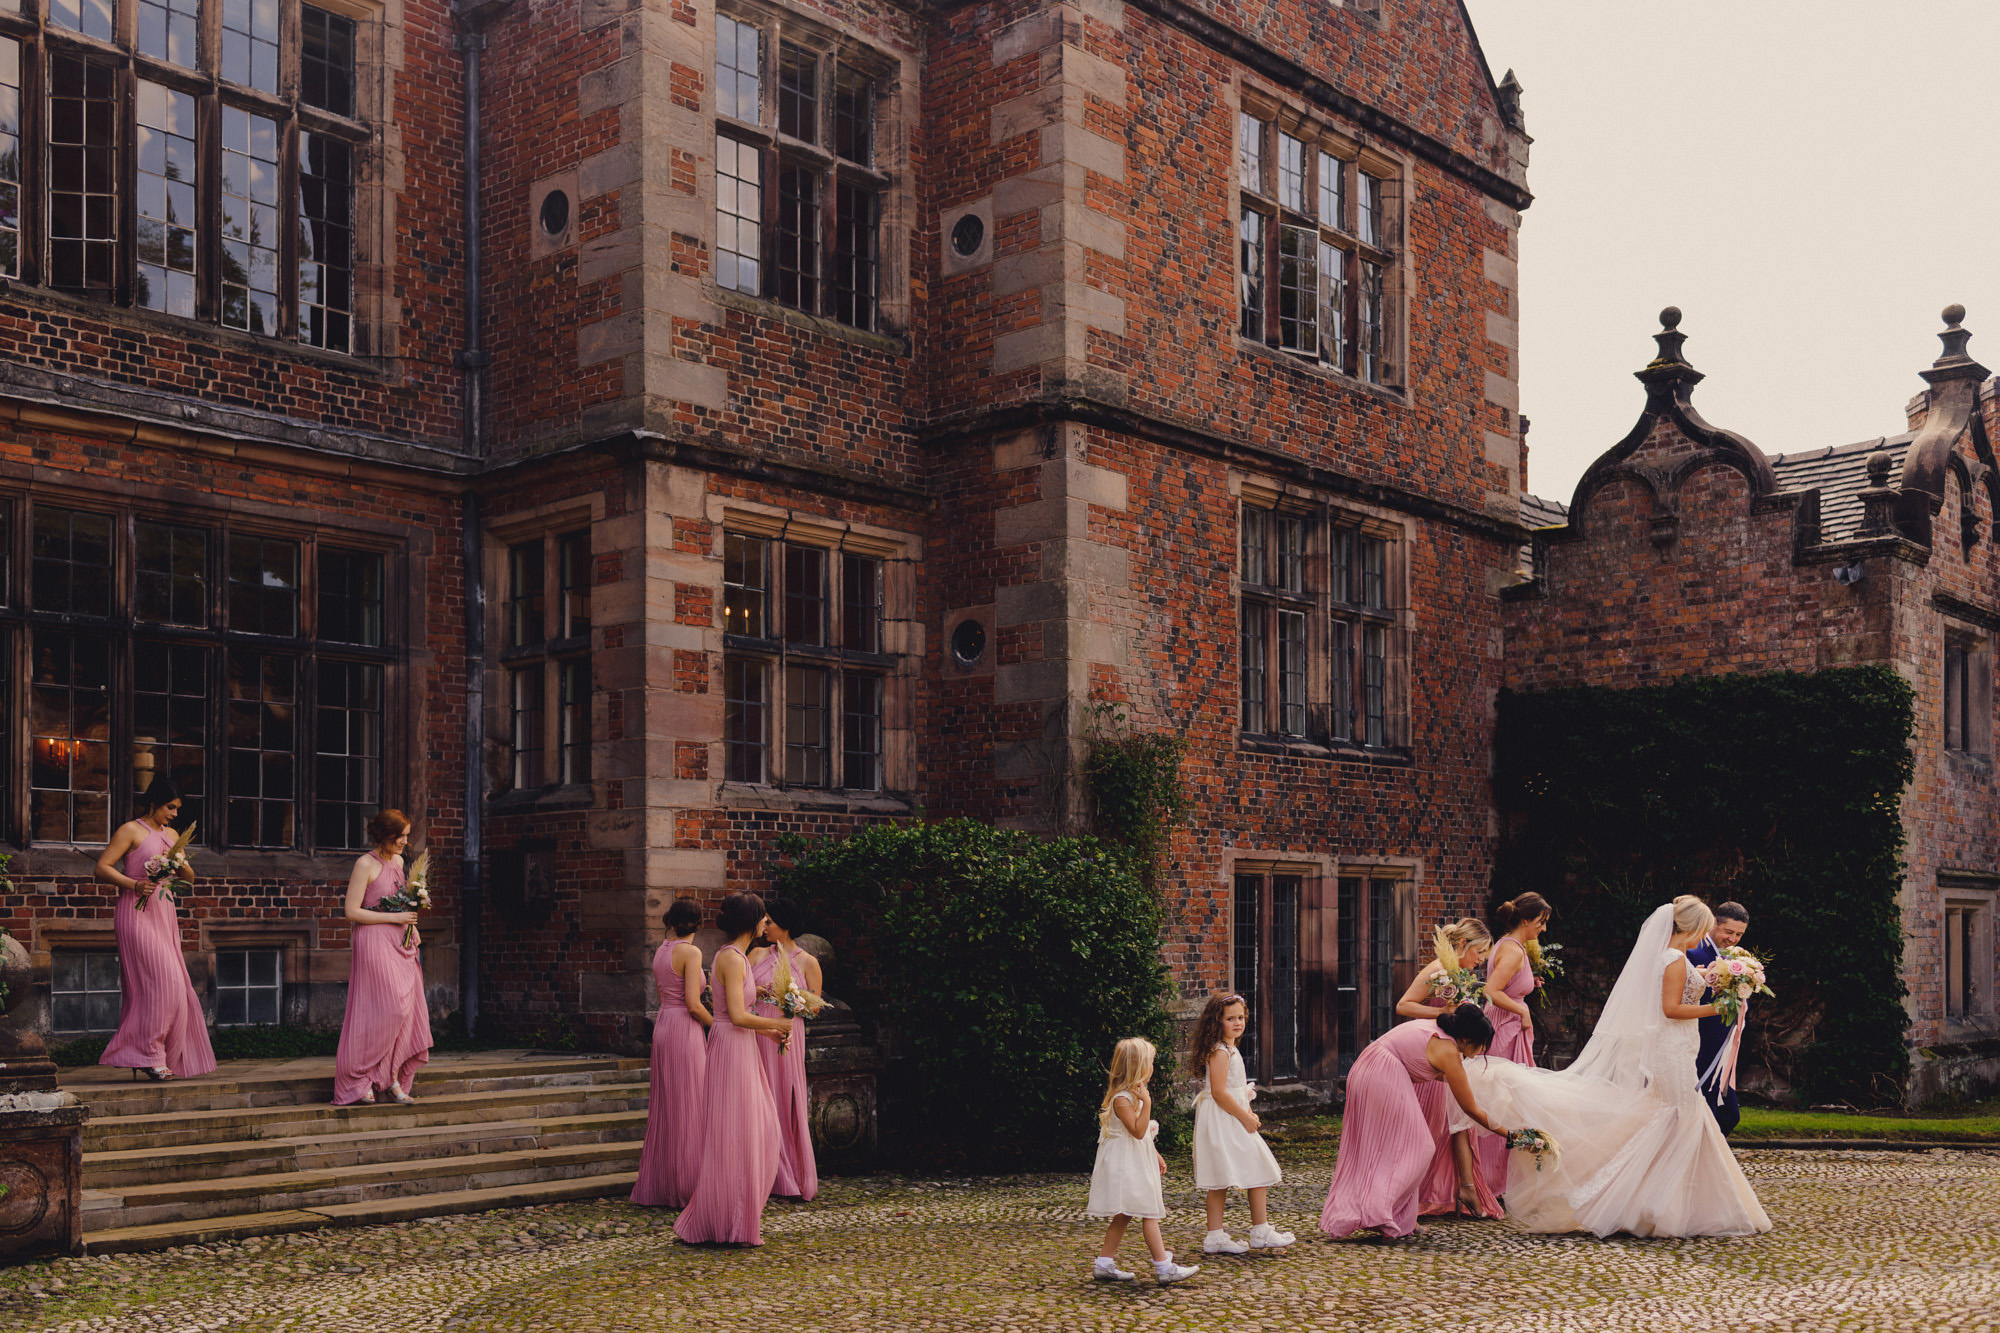 Wedding processional at Dorford Hall, Cheshire, England - photo by Ash Davenport of Miki Studios